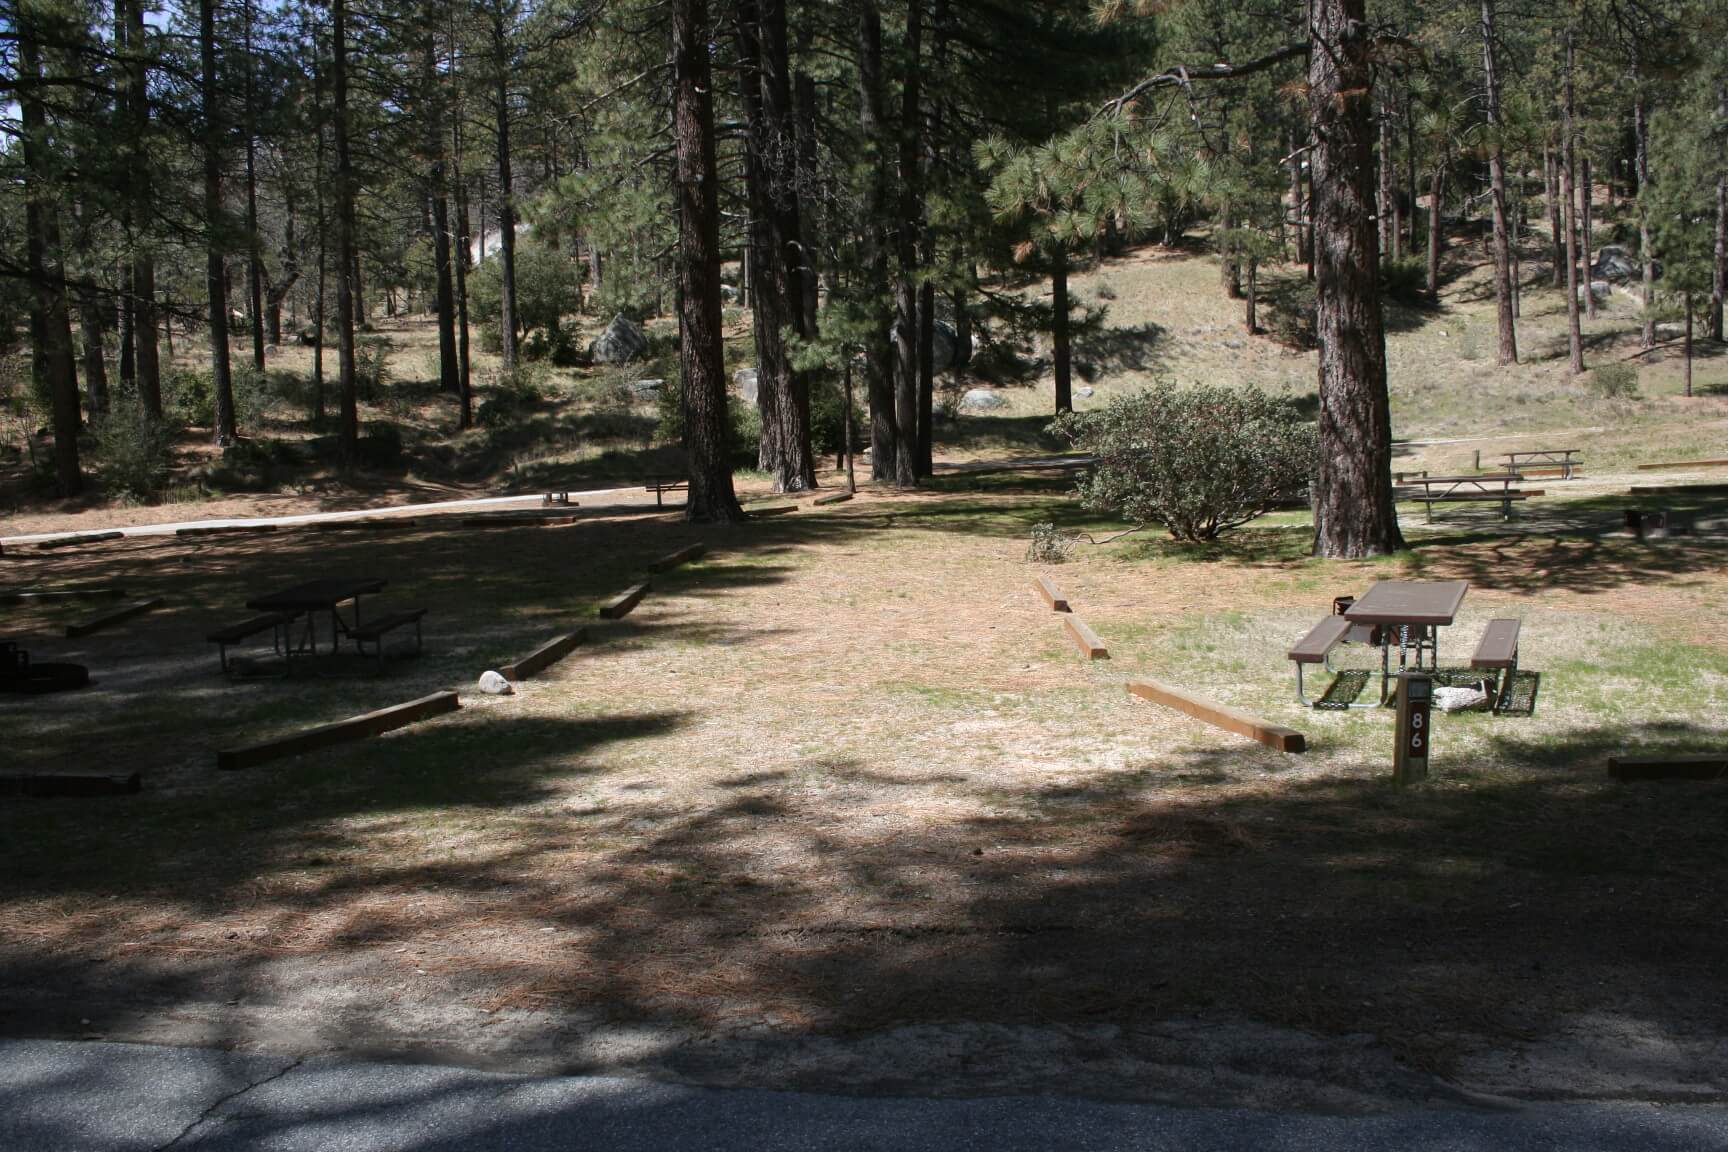 Riverside County Parks Campgrounds_Idyllwild Park Campsite 86